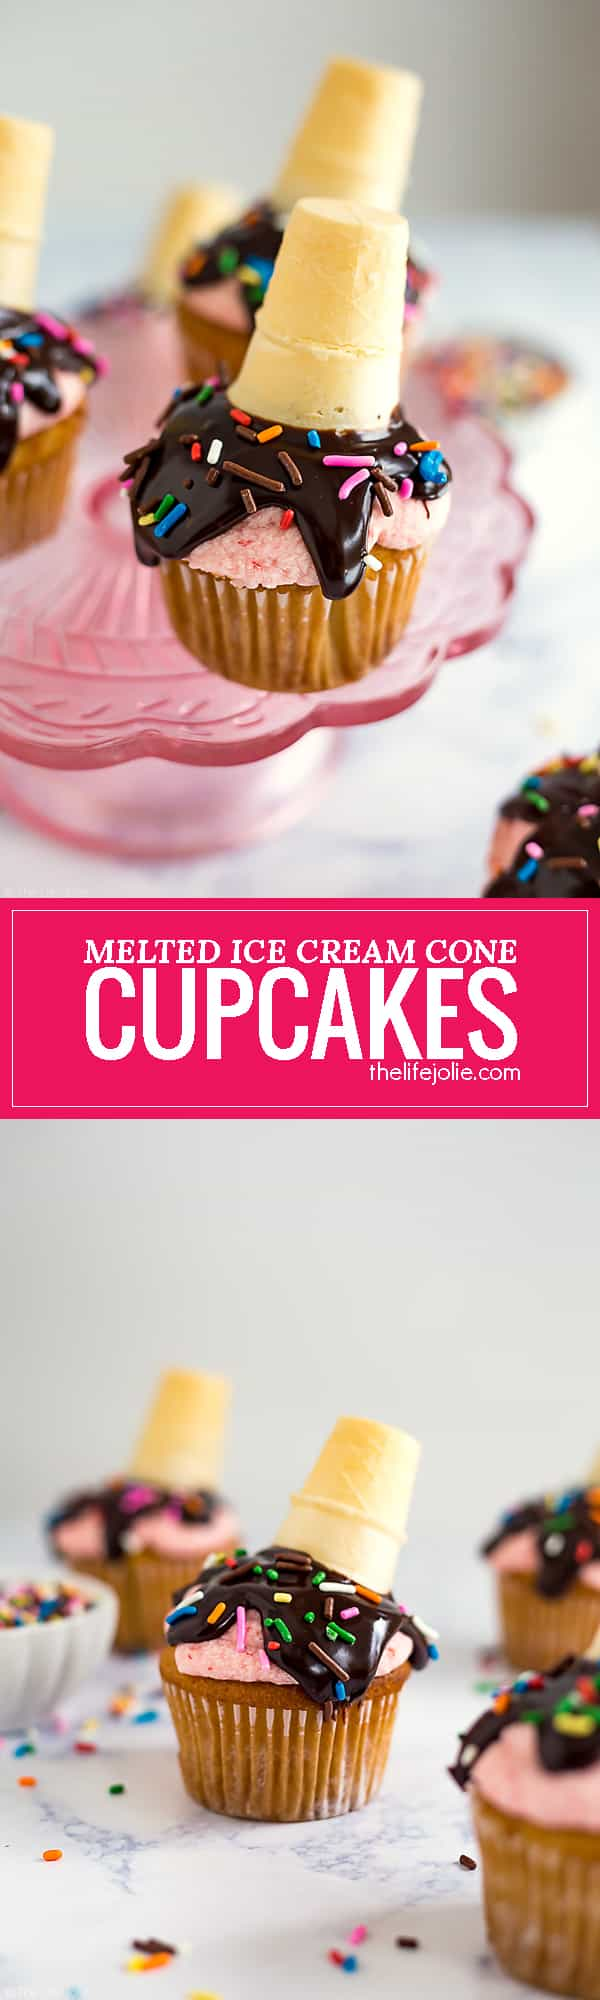 These Melted Ice Cream Cone Cupcakes are such a fun and easy dessert recipe. This tutorial is a delicious combination of moist vanilla cupcakes, strawberry frosting, chocolate and sprinkles! They are perfect to serve at your next party!